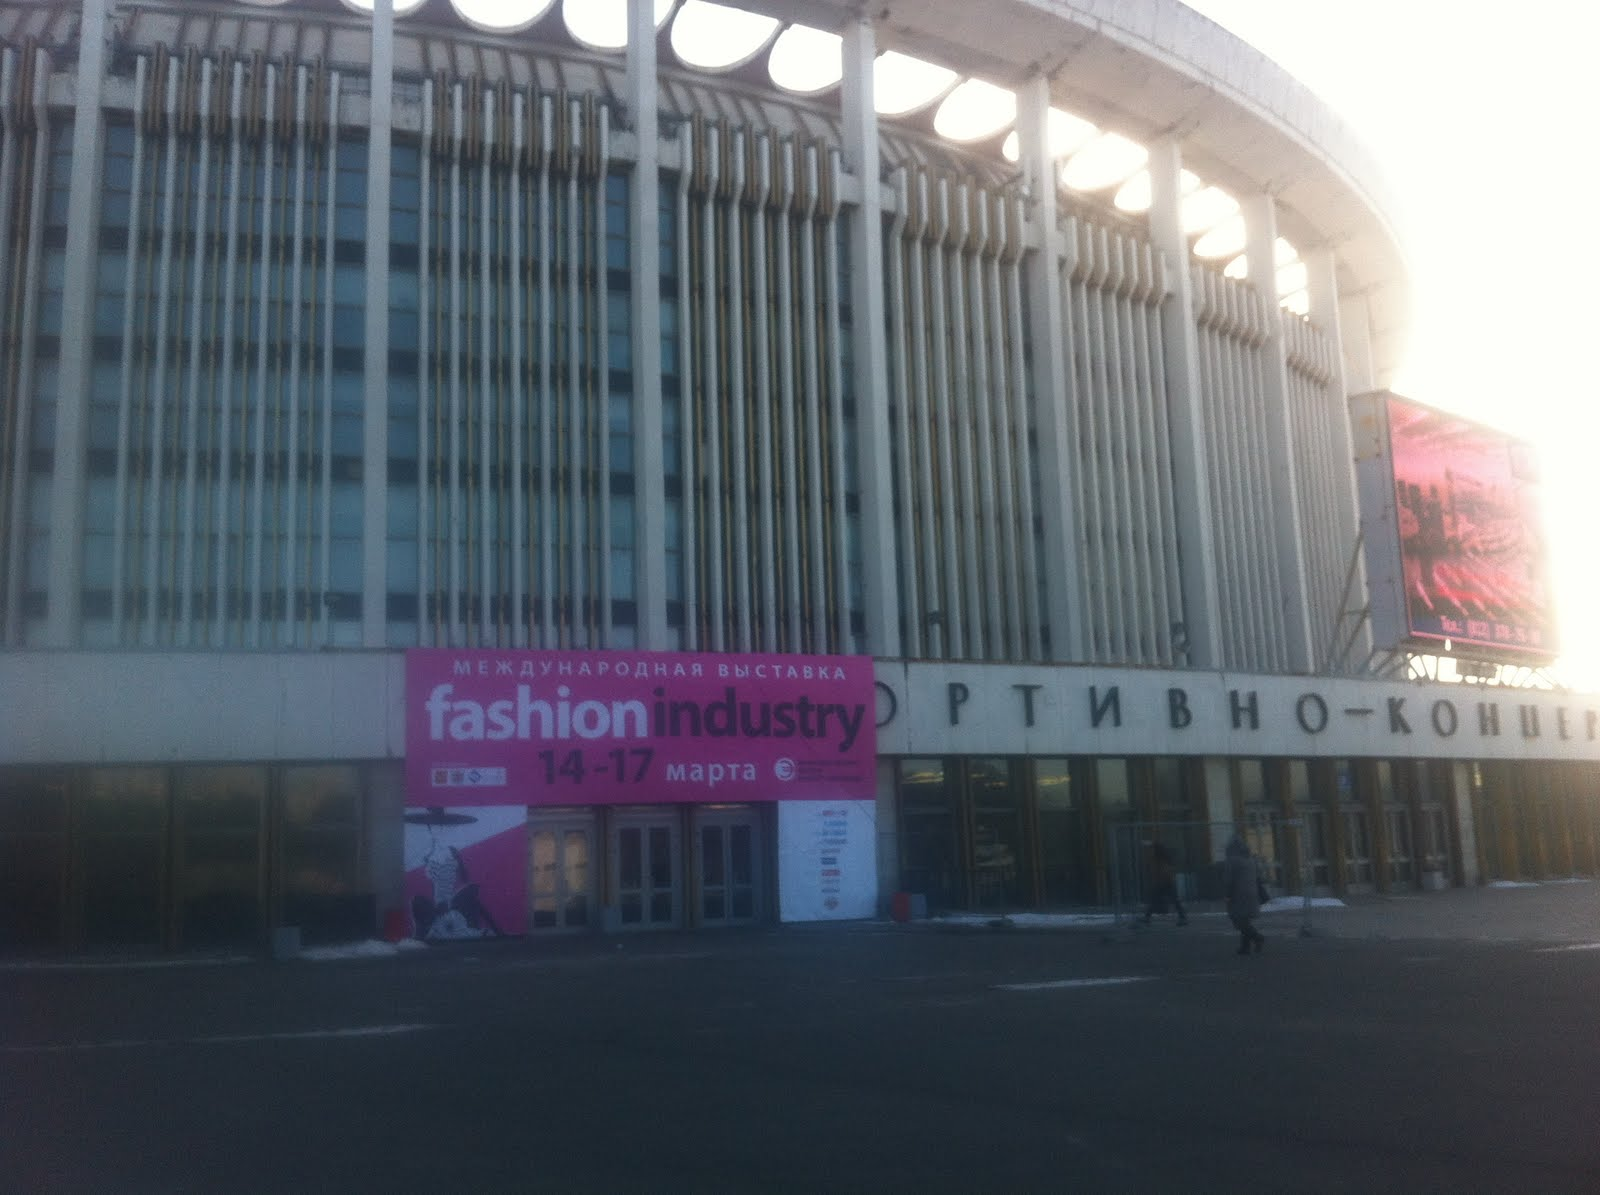 Fashion Industry, Sankt Petersburg, March 2013